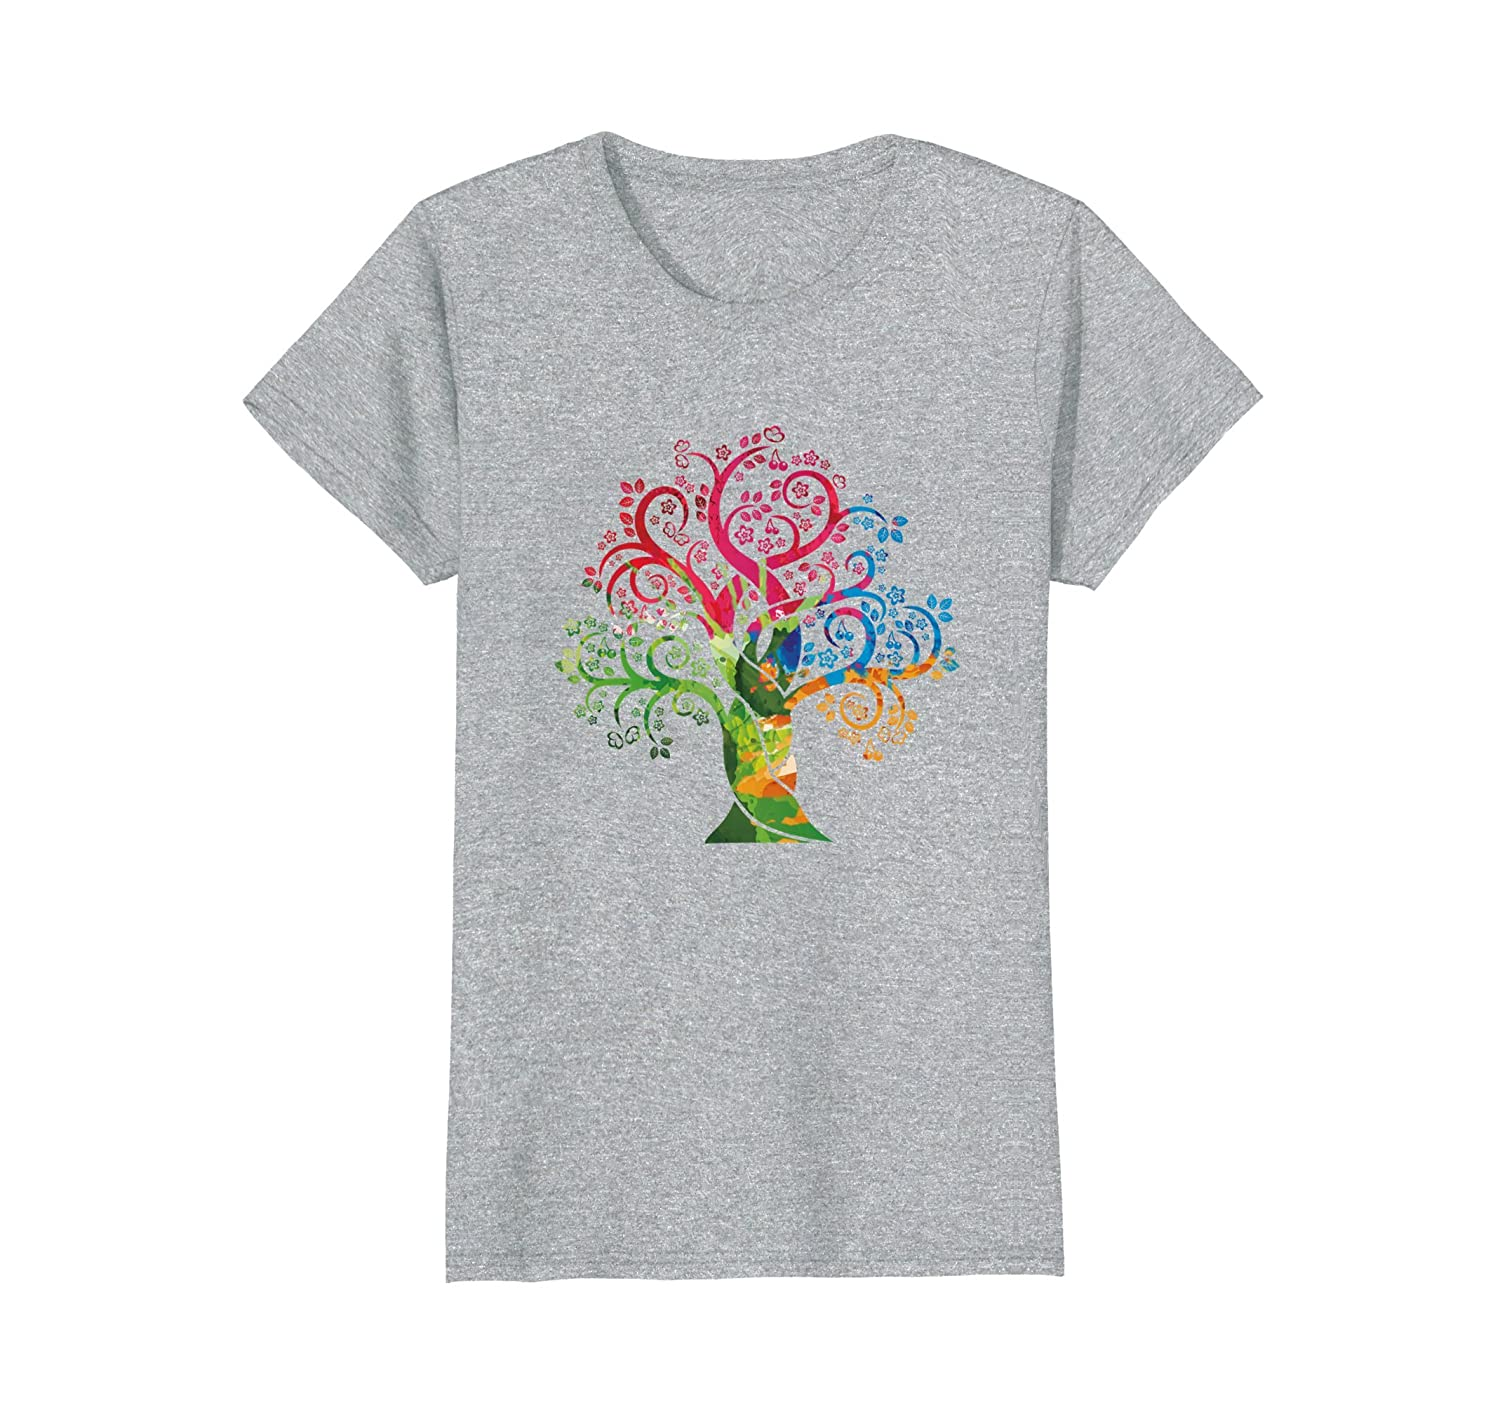 Womens Colorful Life is really Good Vintage Tree Art T-Shirt-ah my shirt one gift